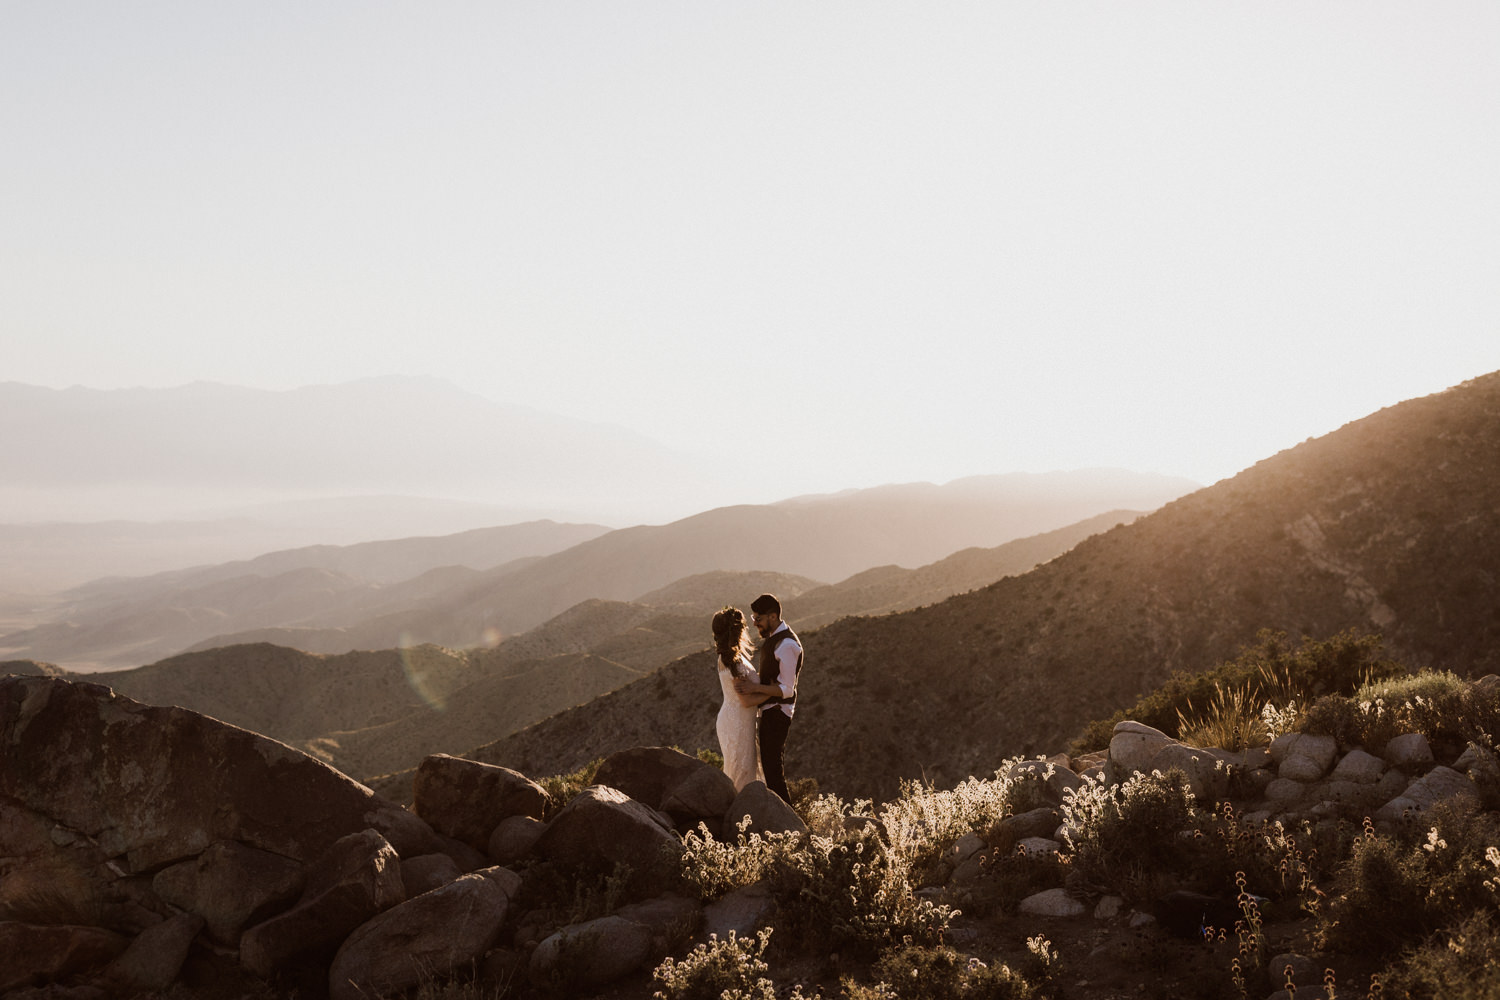 joshua-tree-national-park-elopement-31.jpg